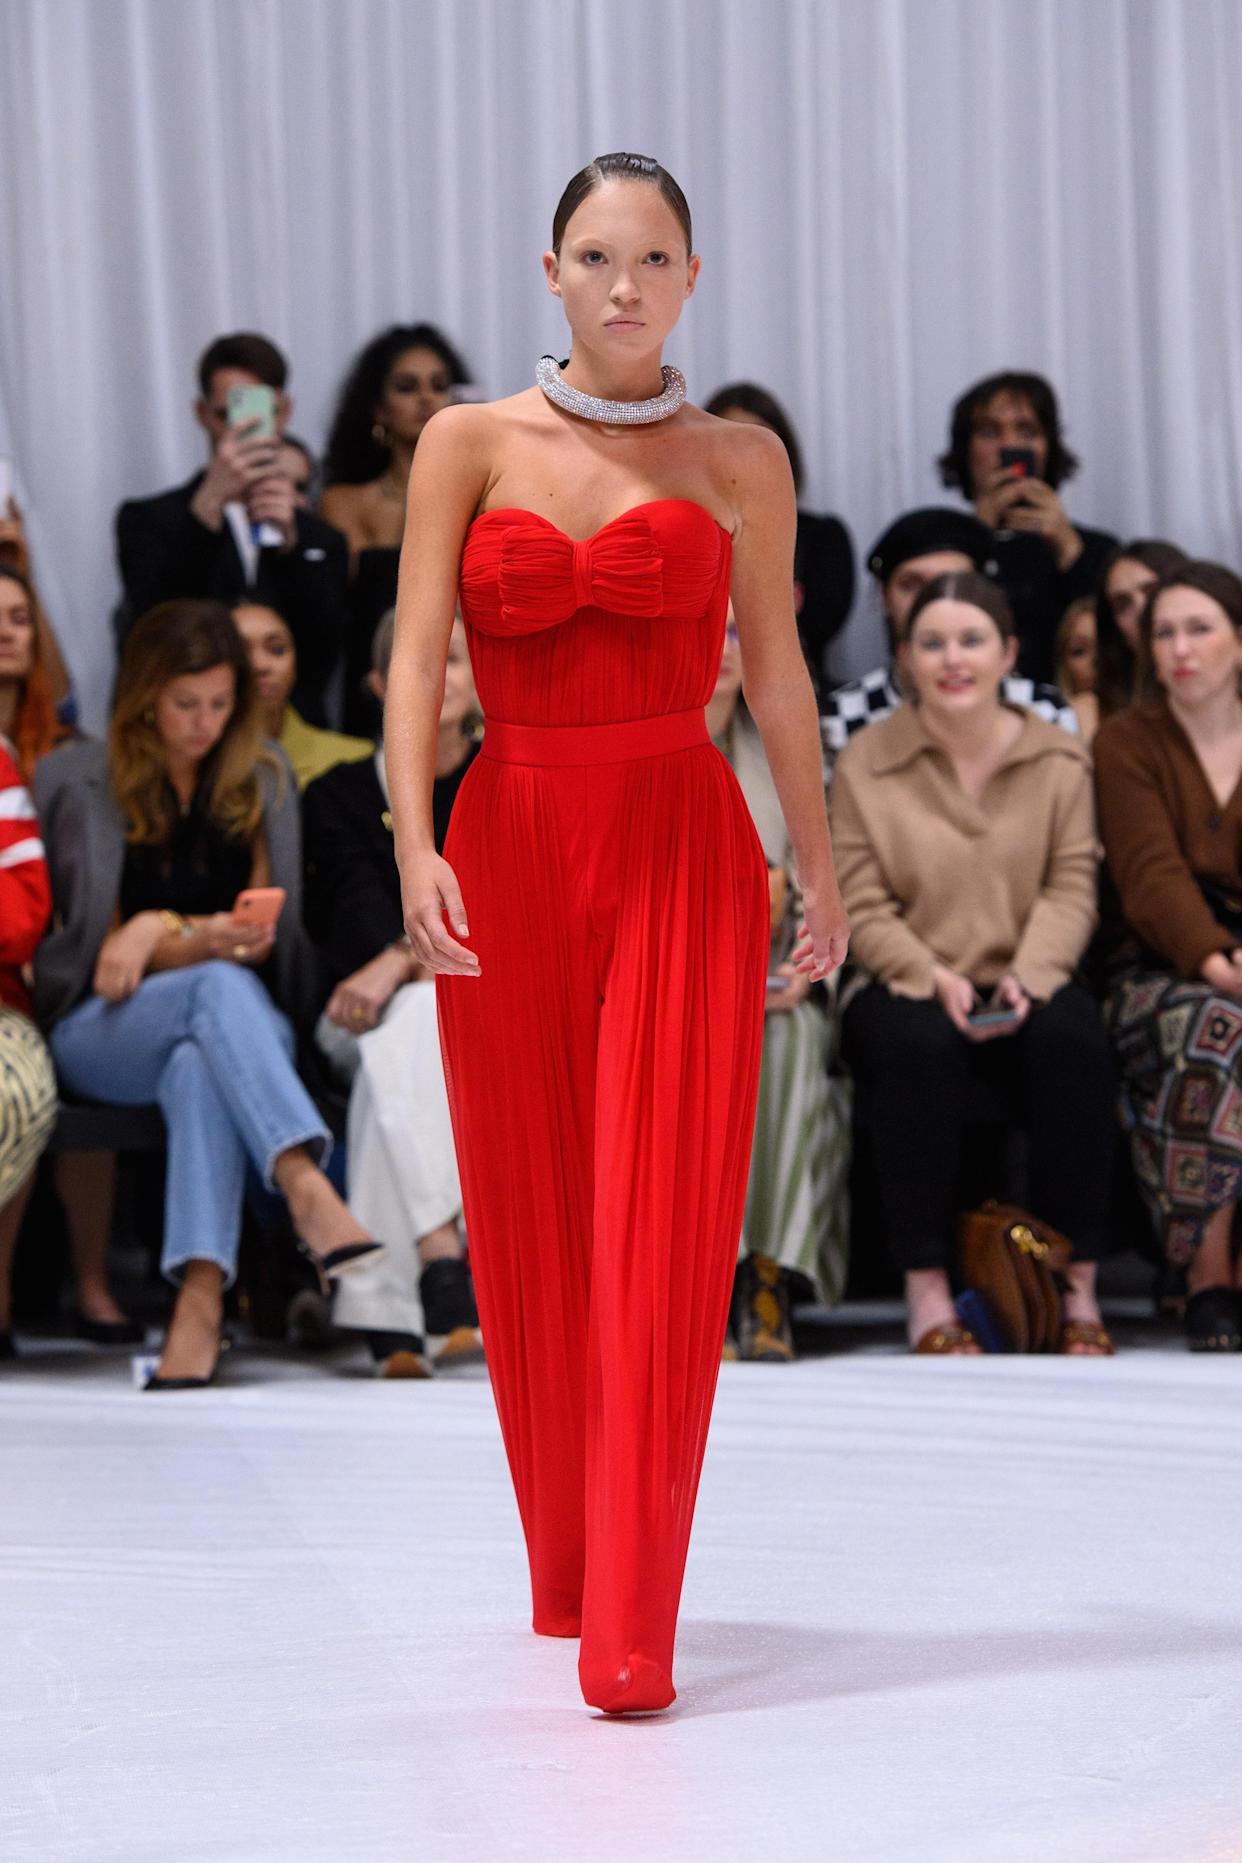 Model Lila Grace Moss Hack on the catwalk during the Richard Quinn fashion show, held at the Londoner hotel, as part of  London Fashion Week September 2021. Picture date: Tuesday September 21, 2021. Photo credit should read: Matt Crossick/Empics